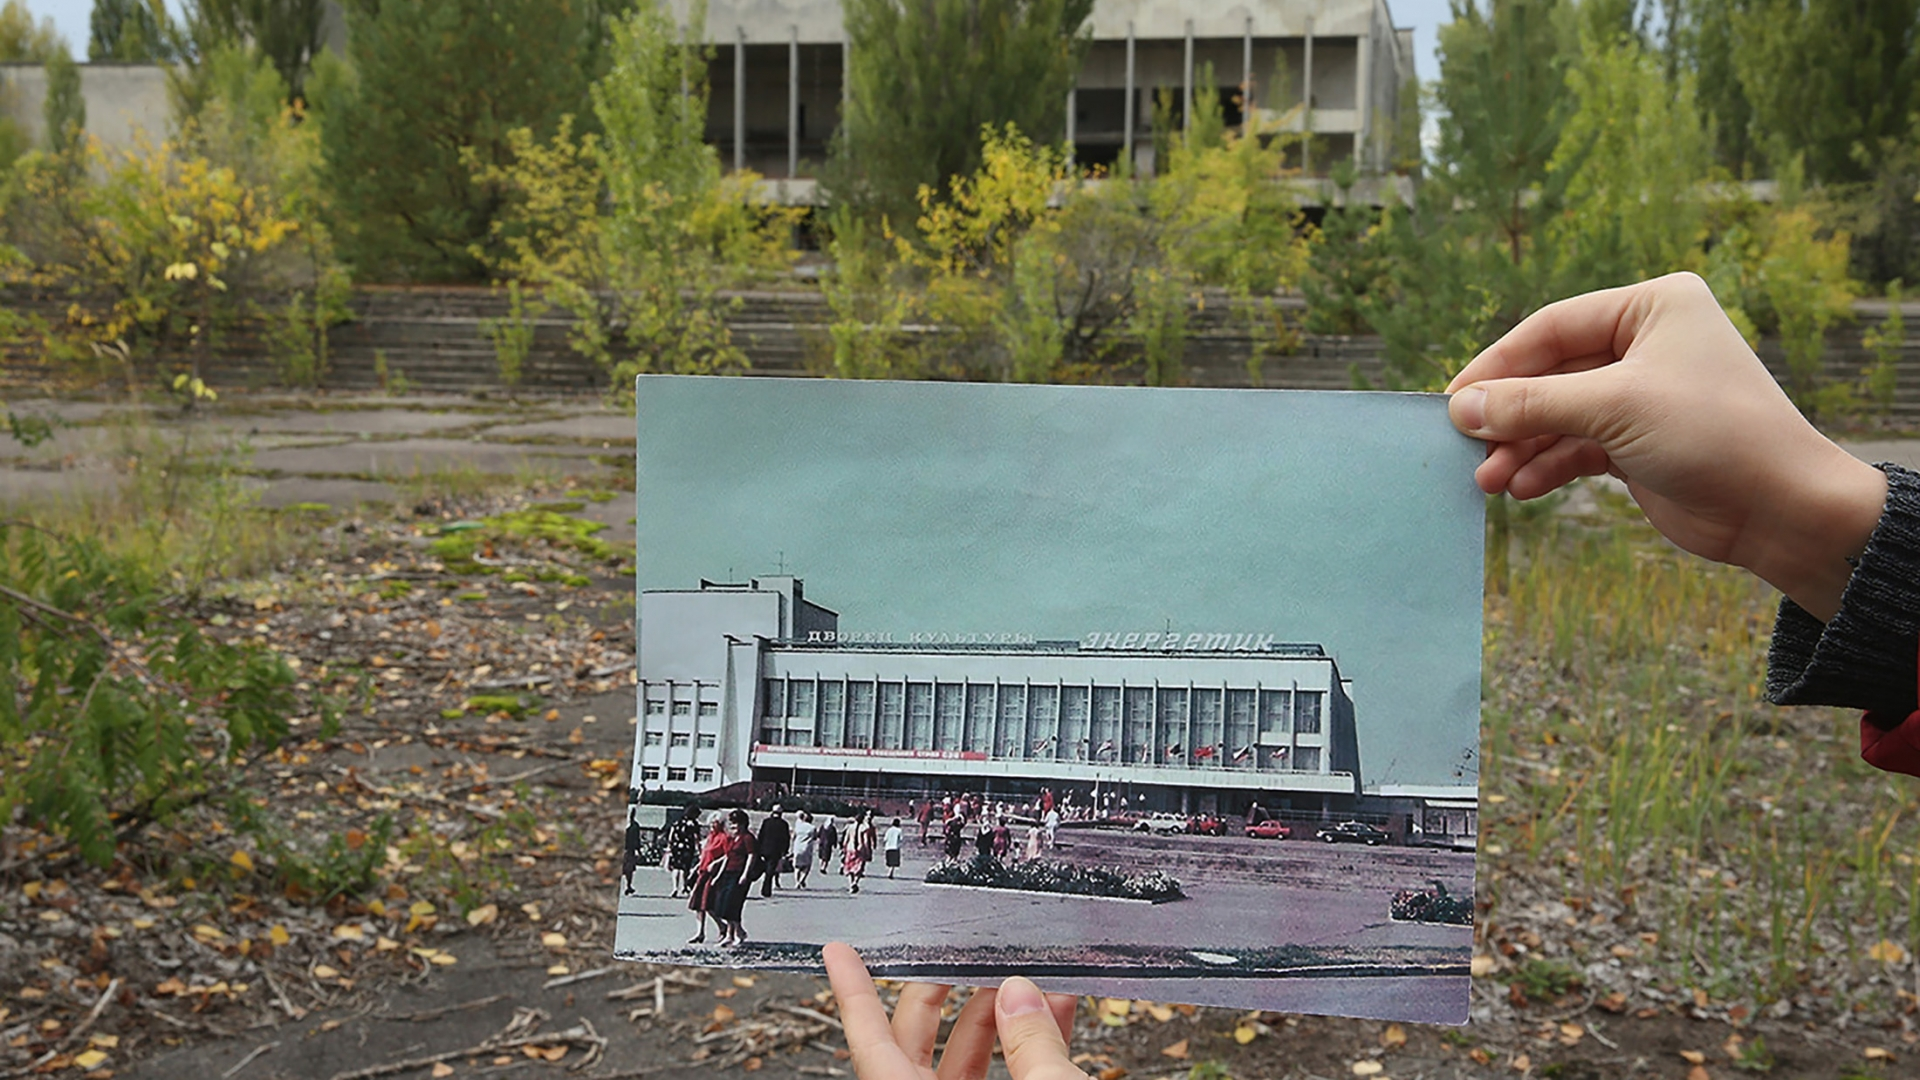 A person holds up a photo showing the city of Prypiat's main square and the 'Energetik' cultural center before the 1986 Chernobyl nuclear disaster, against the same site, now abandoned and overgrown with trees, 2015. (Credit: Sean Gallup/Getty Images)